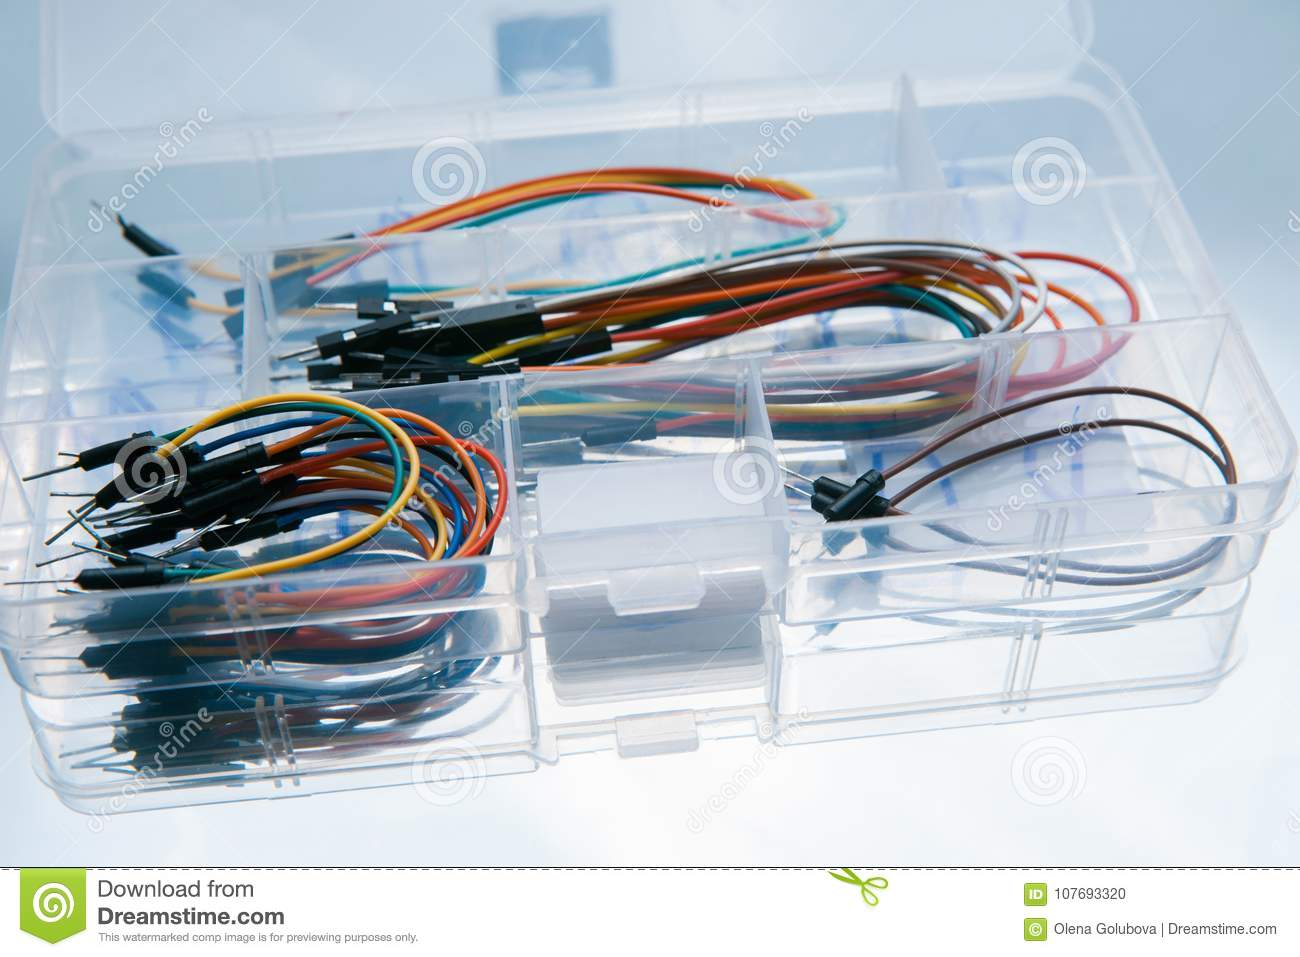 Box Jump Wires Cables White Background Stock Photo - Image of refit ...